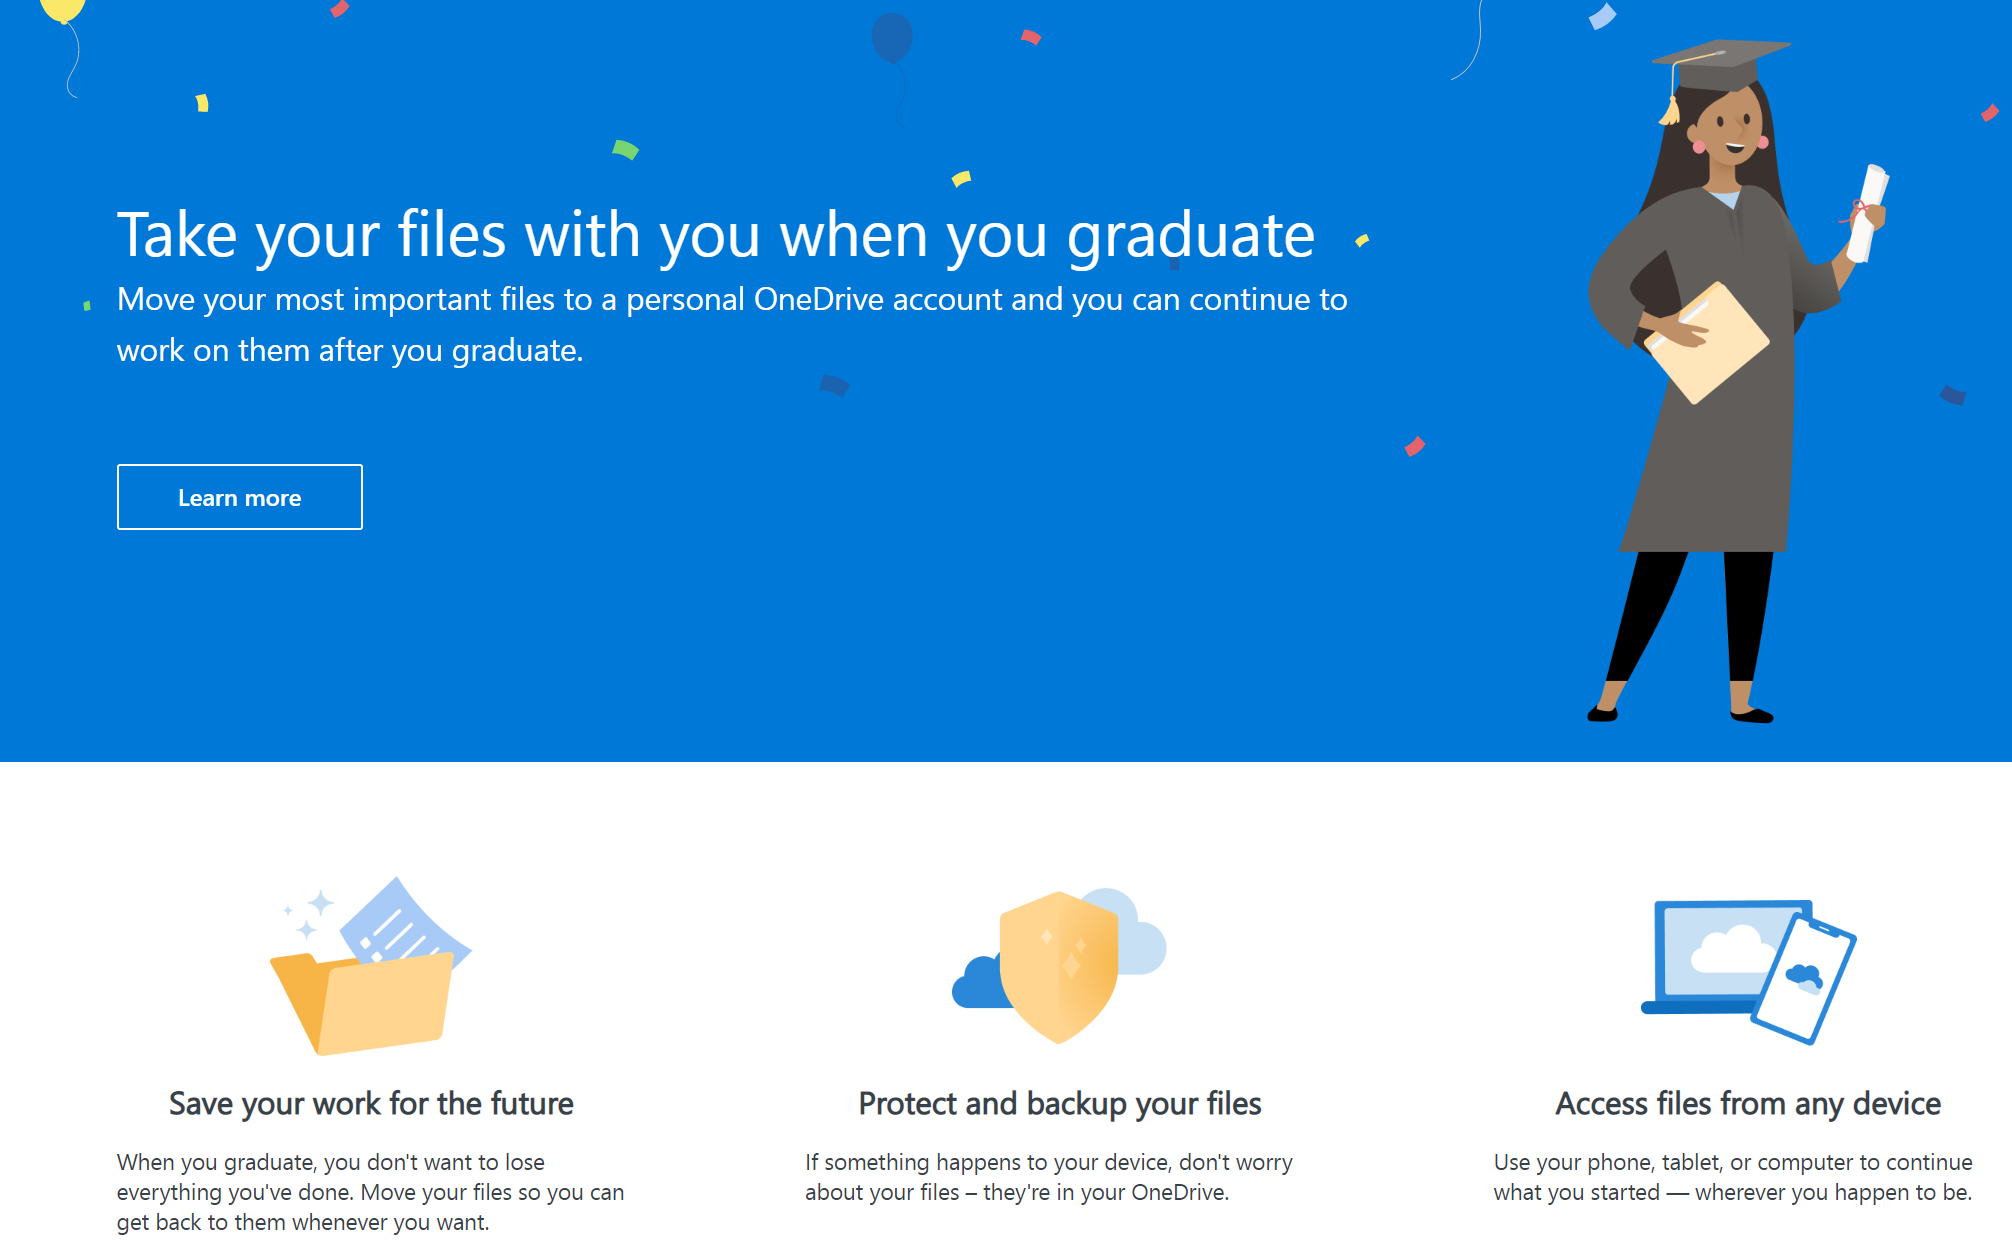 Take Your Files (&email!) With You Using OneDrive Graduation